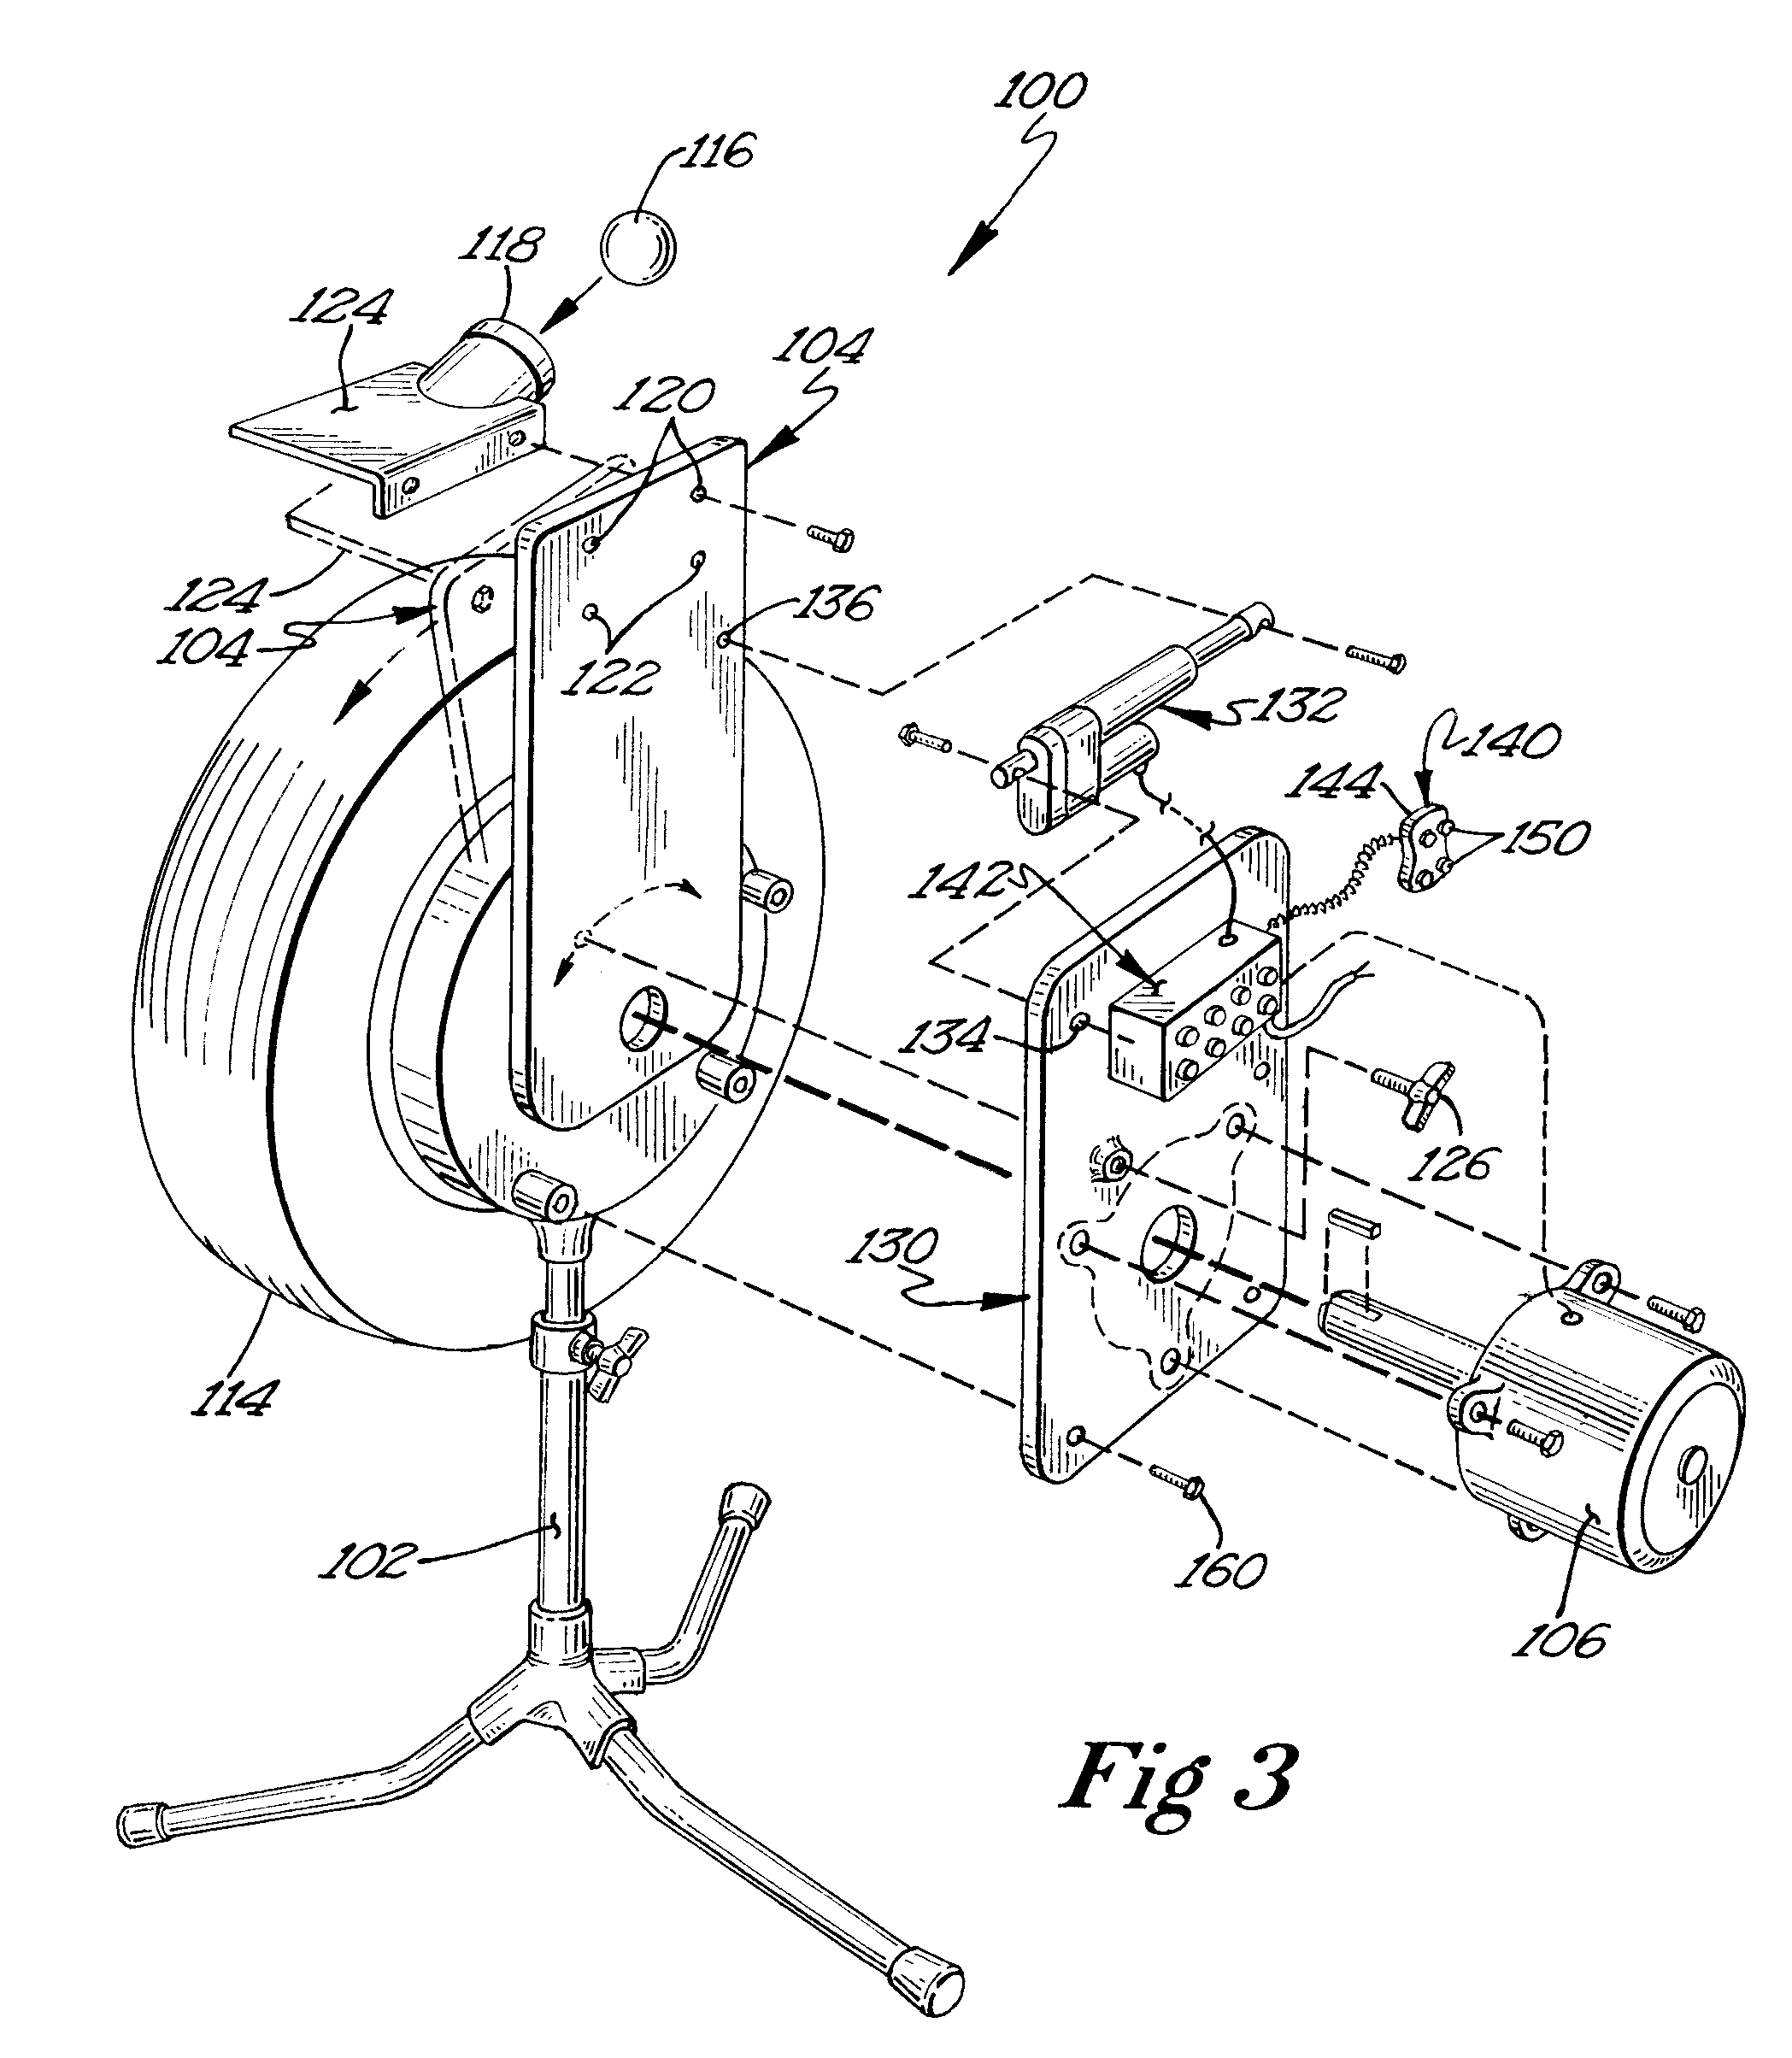 Patent Us7383832 Change Up Pitching Machine Google Patents